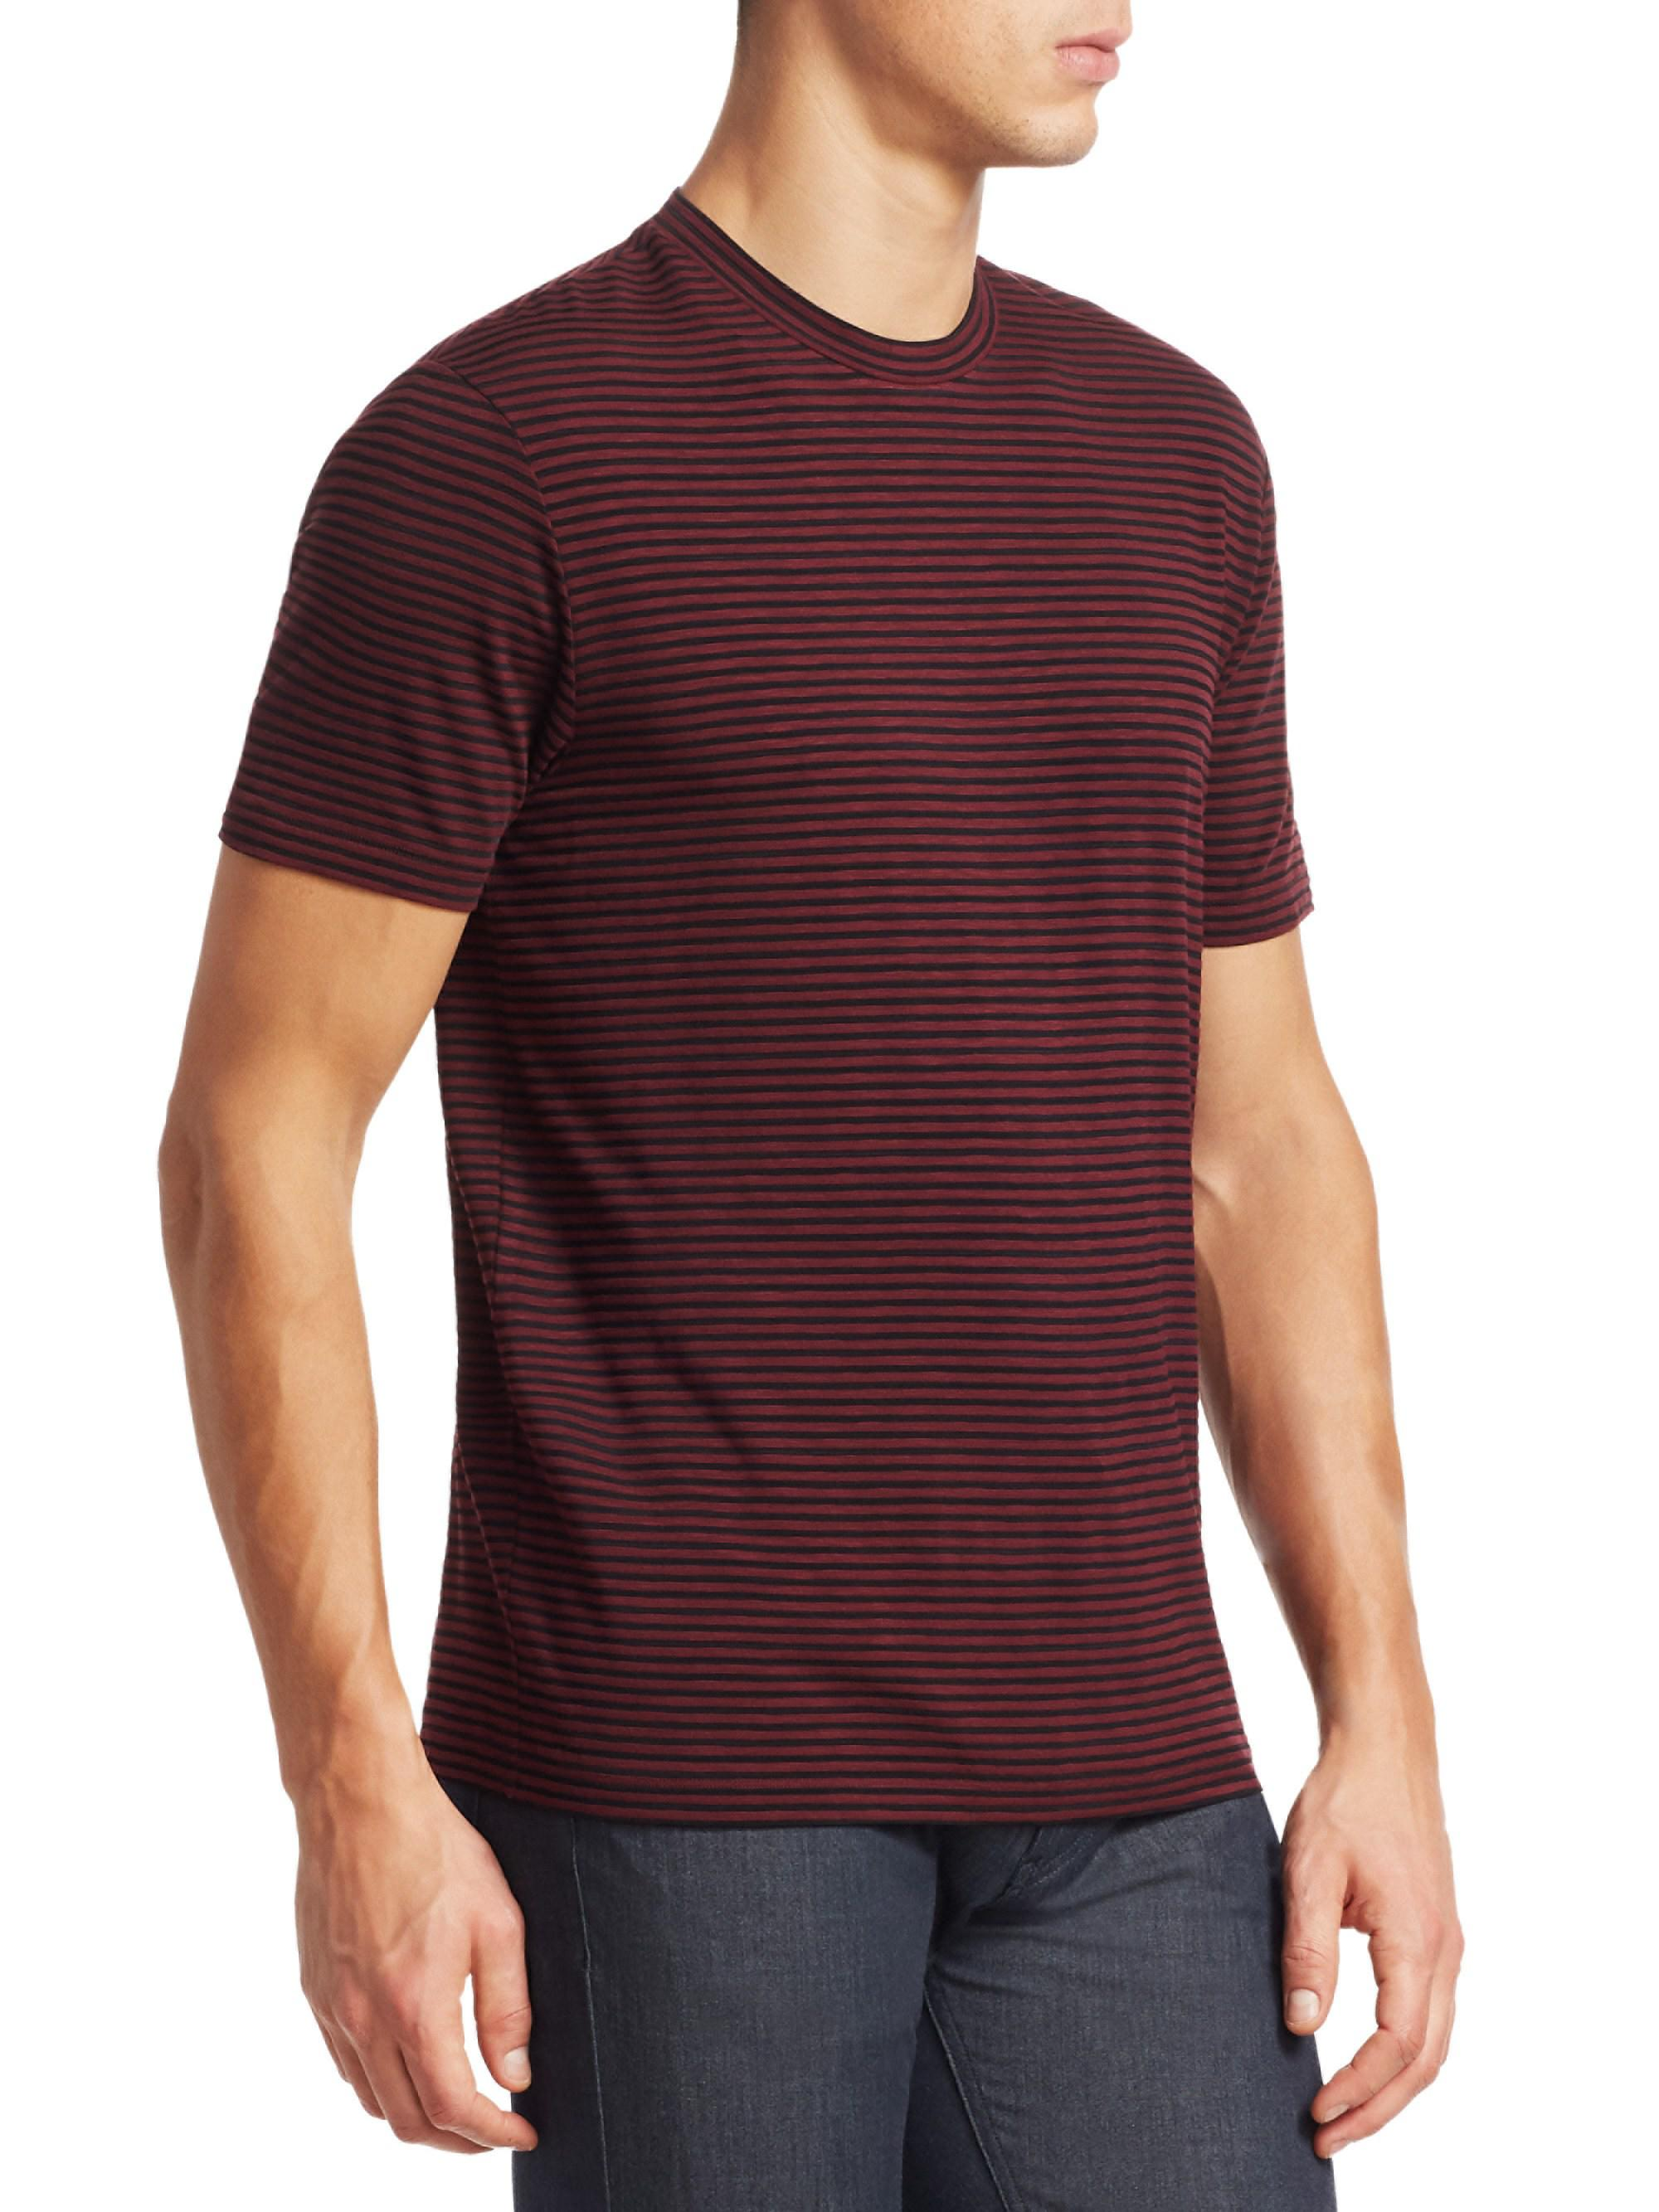 a89ed6032 Lyst - Emporio Armani Stripe Crewneck T-shirt for Men